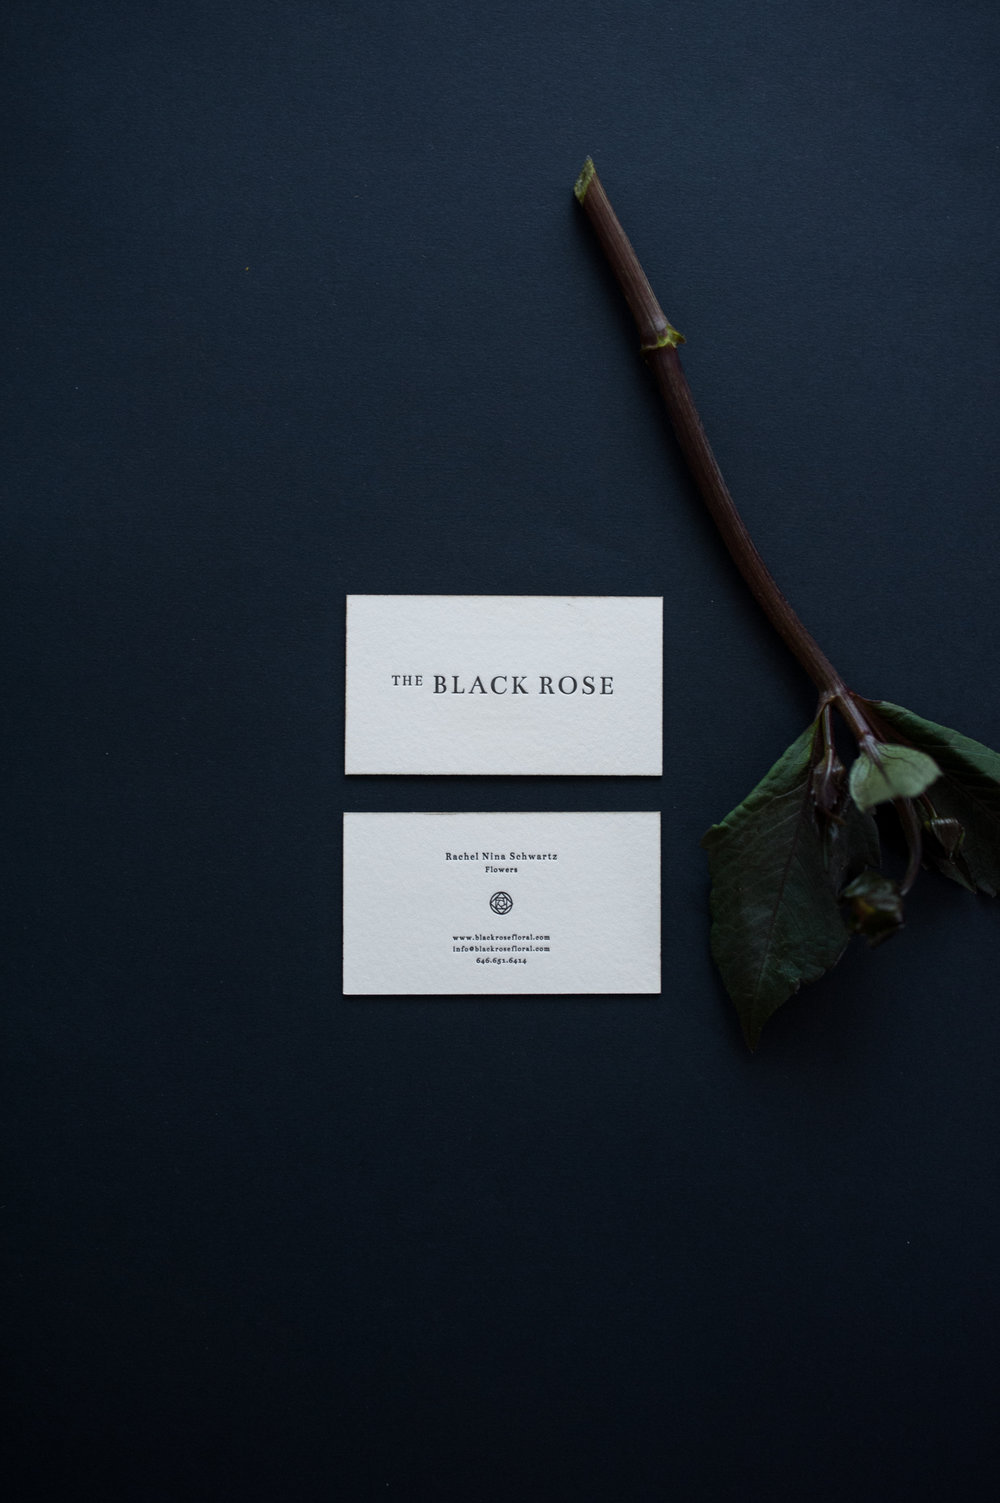 The Black Rose - LOGO · IDENTITY